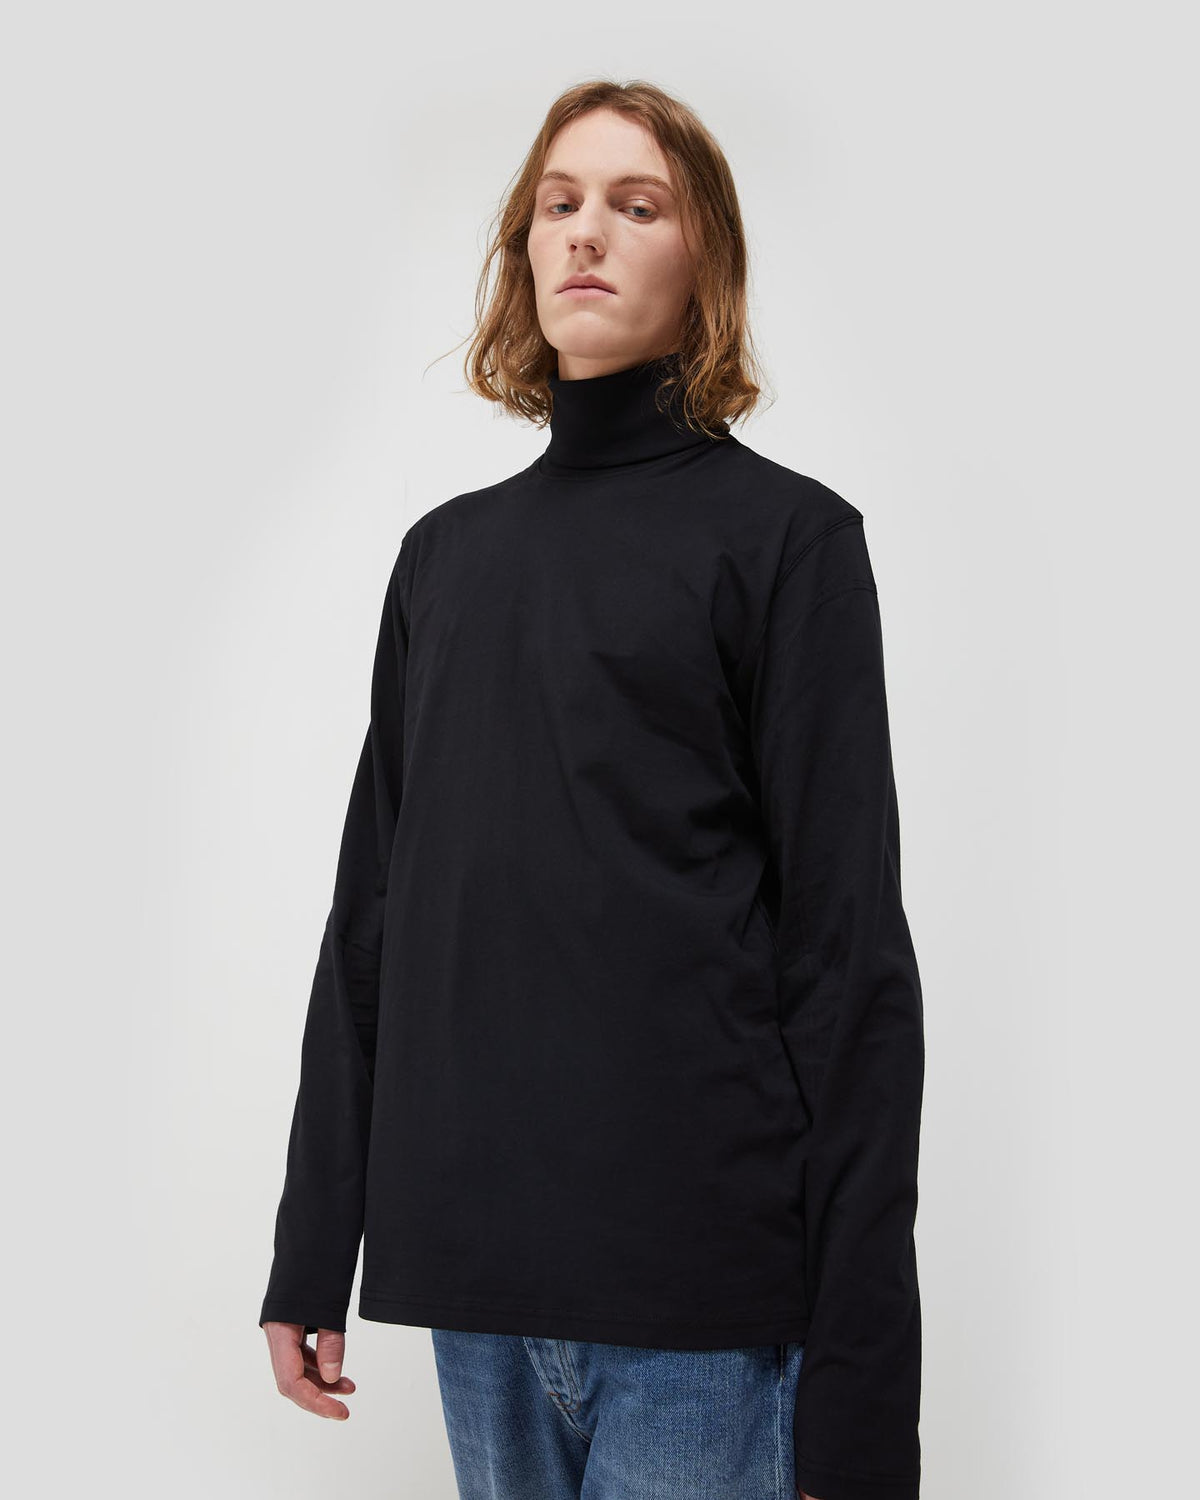 Meier Unisex Turtleneck T-Shirt